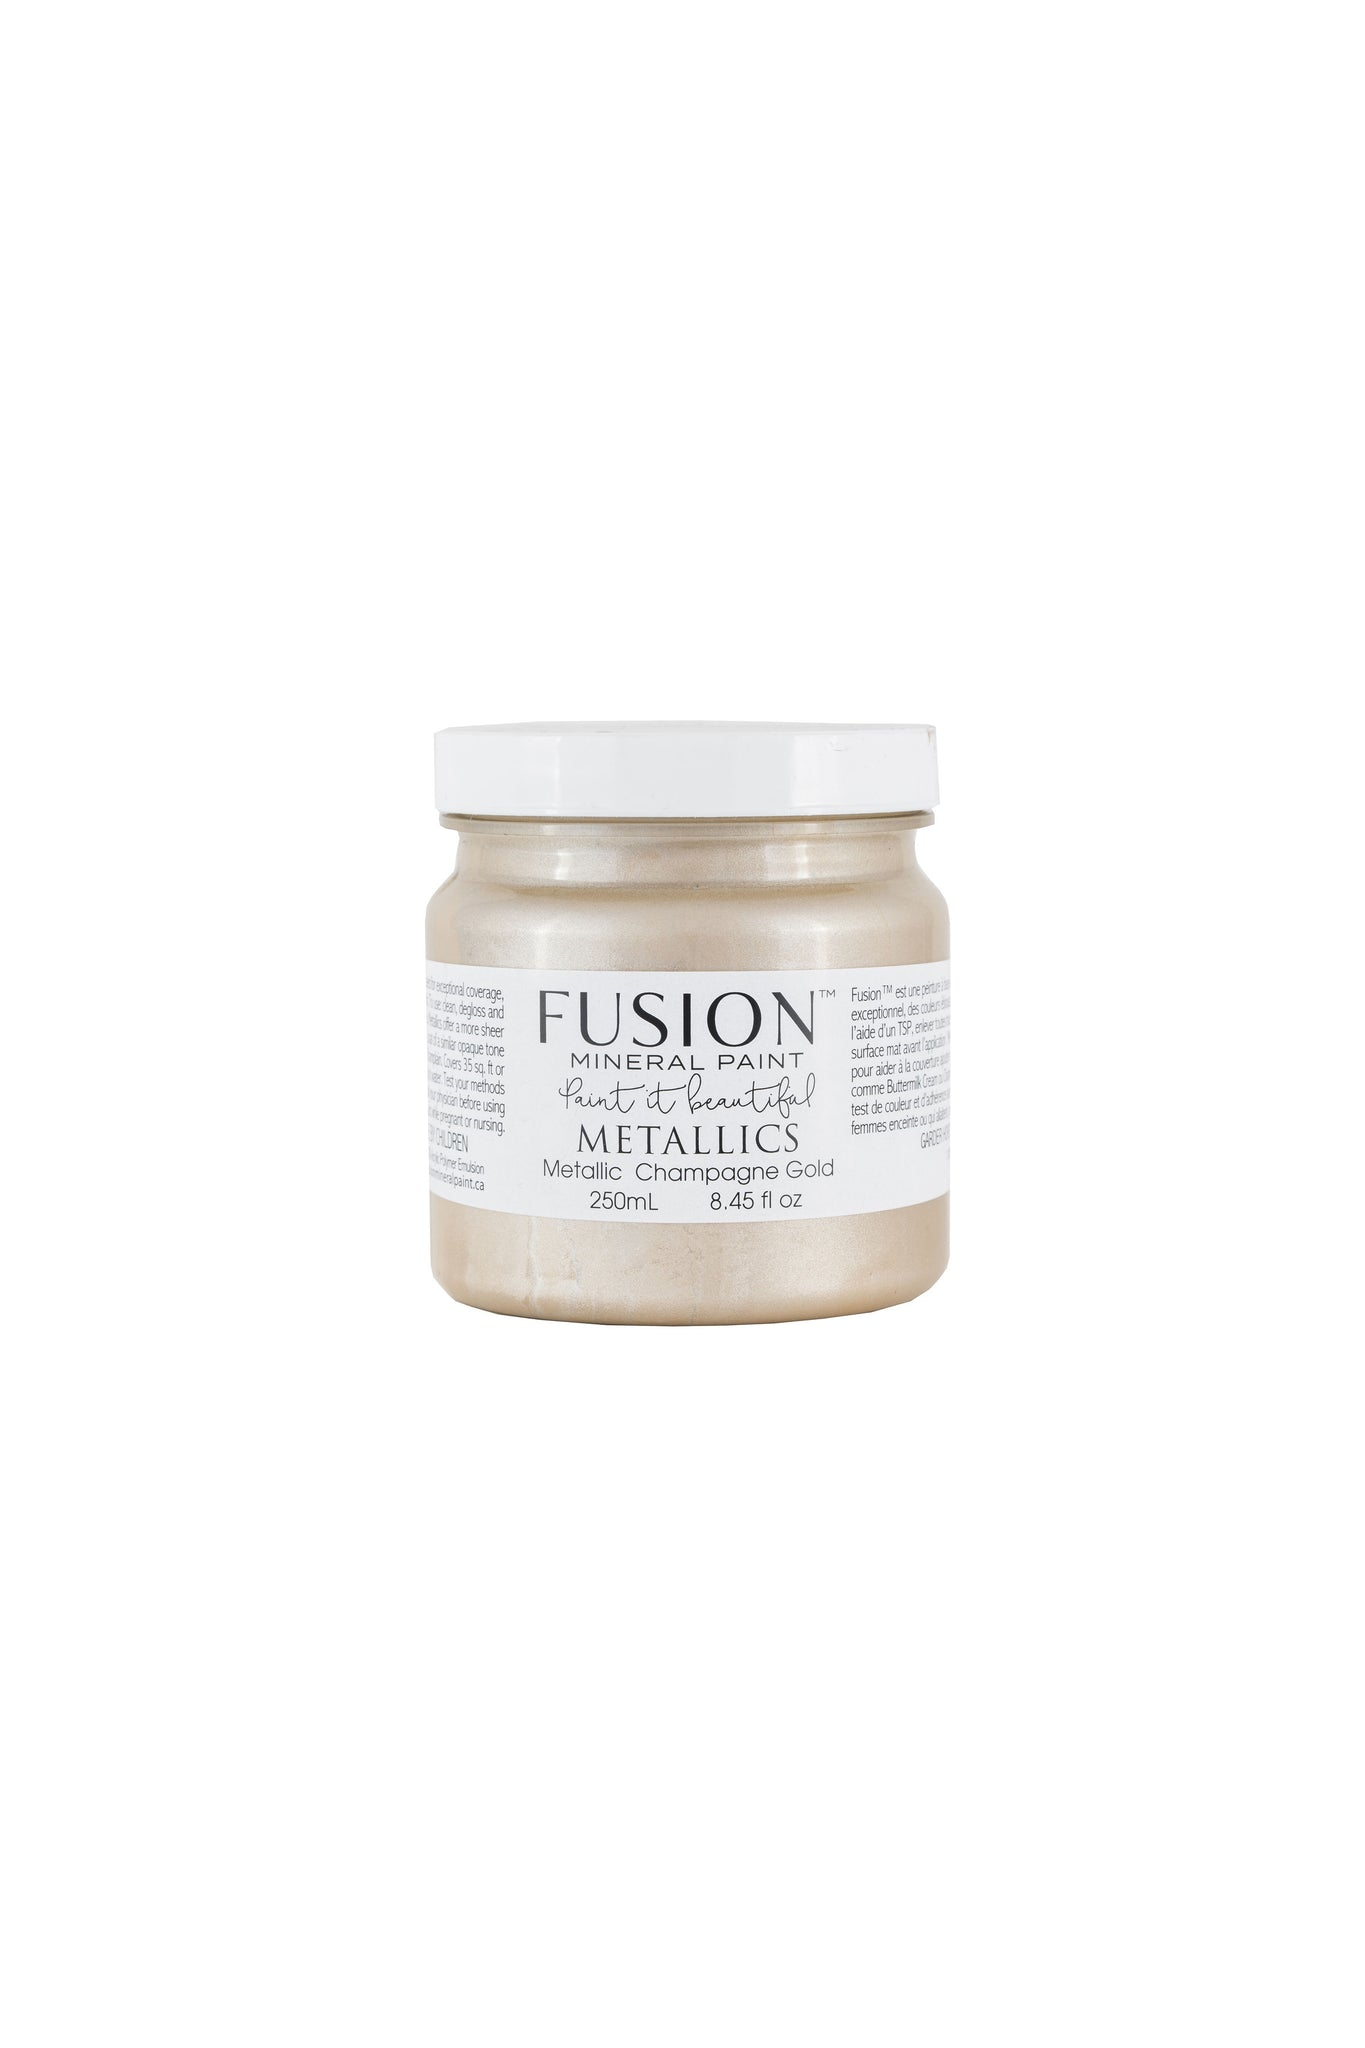 A 250ml container of Champagne Gold Metallic Fusion Mineral Paint.